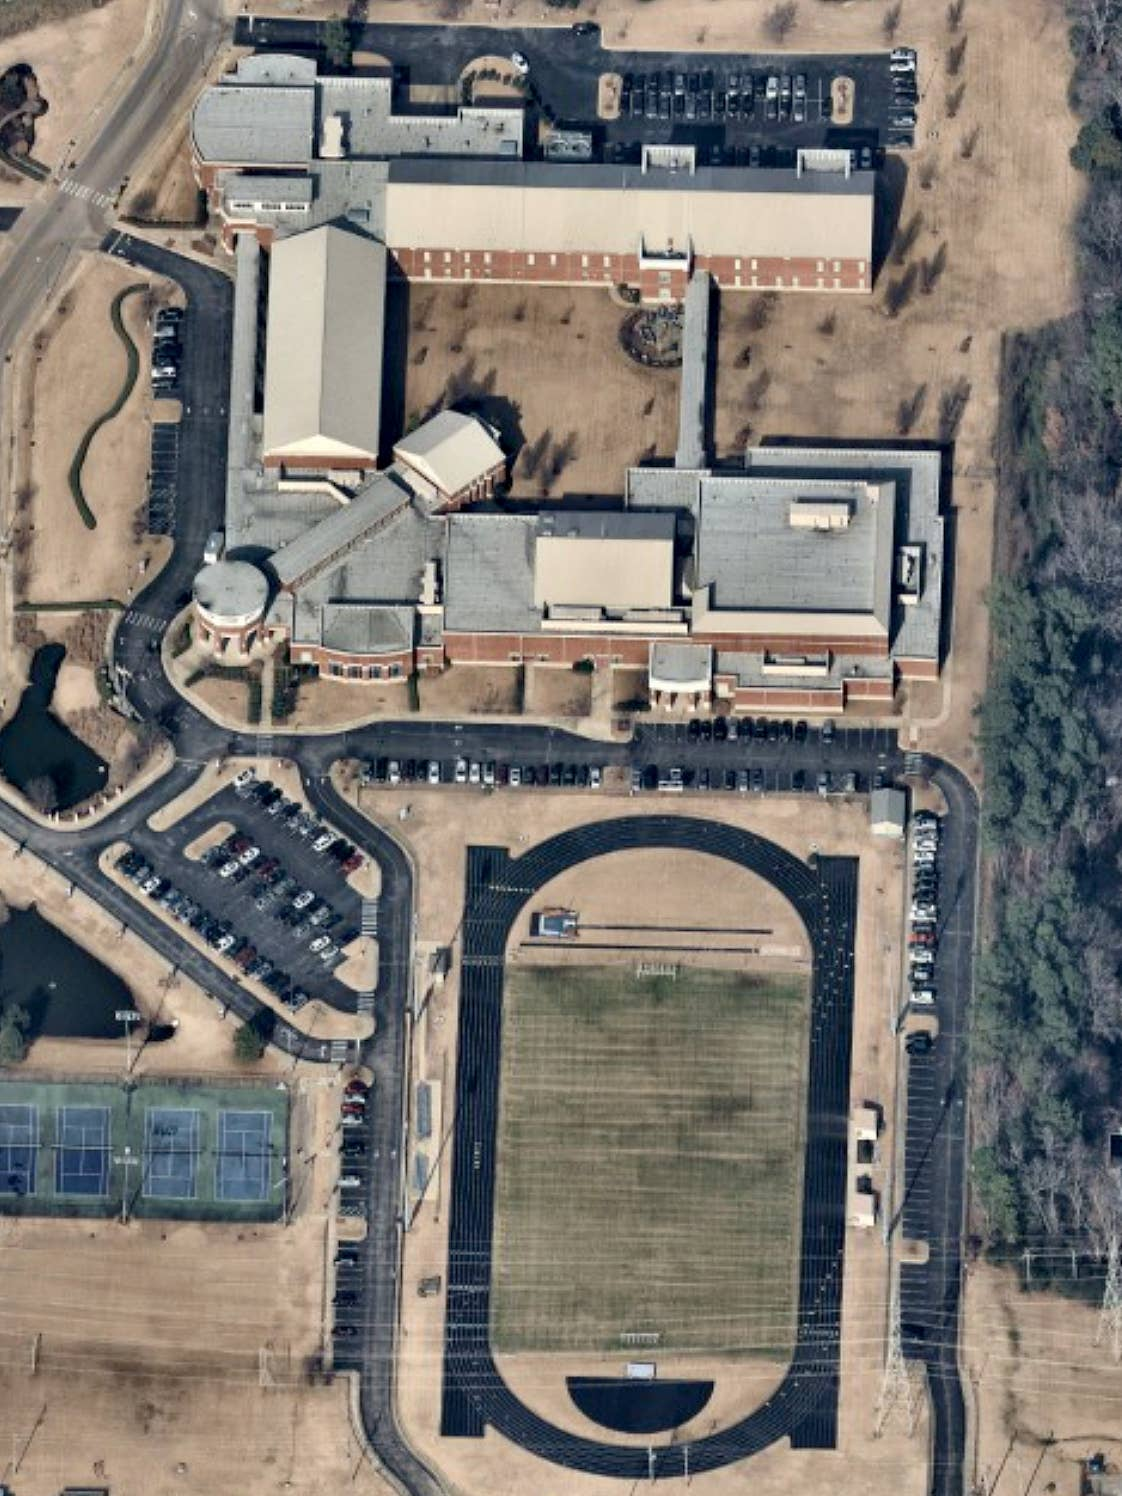 Oblique aerial map view of St. Benedict of Auburndale School in Cordova, TN - 8 January 2019